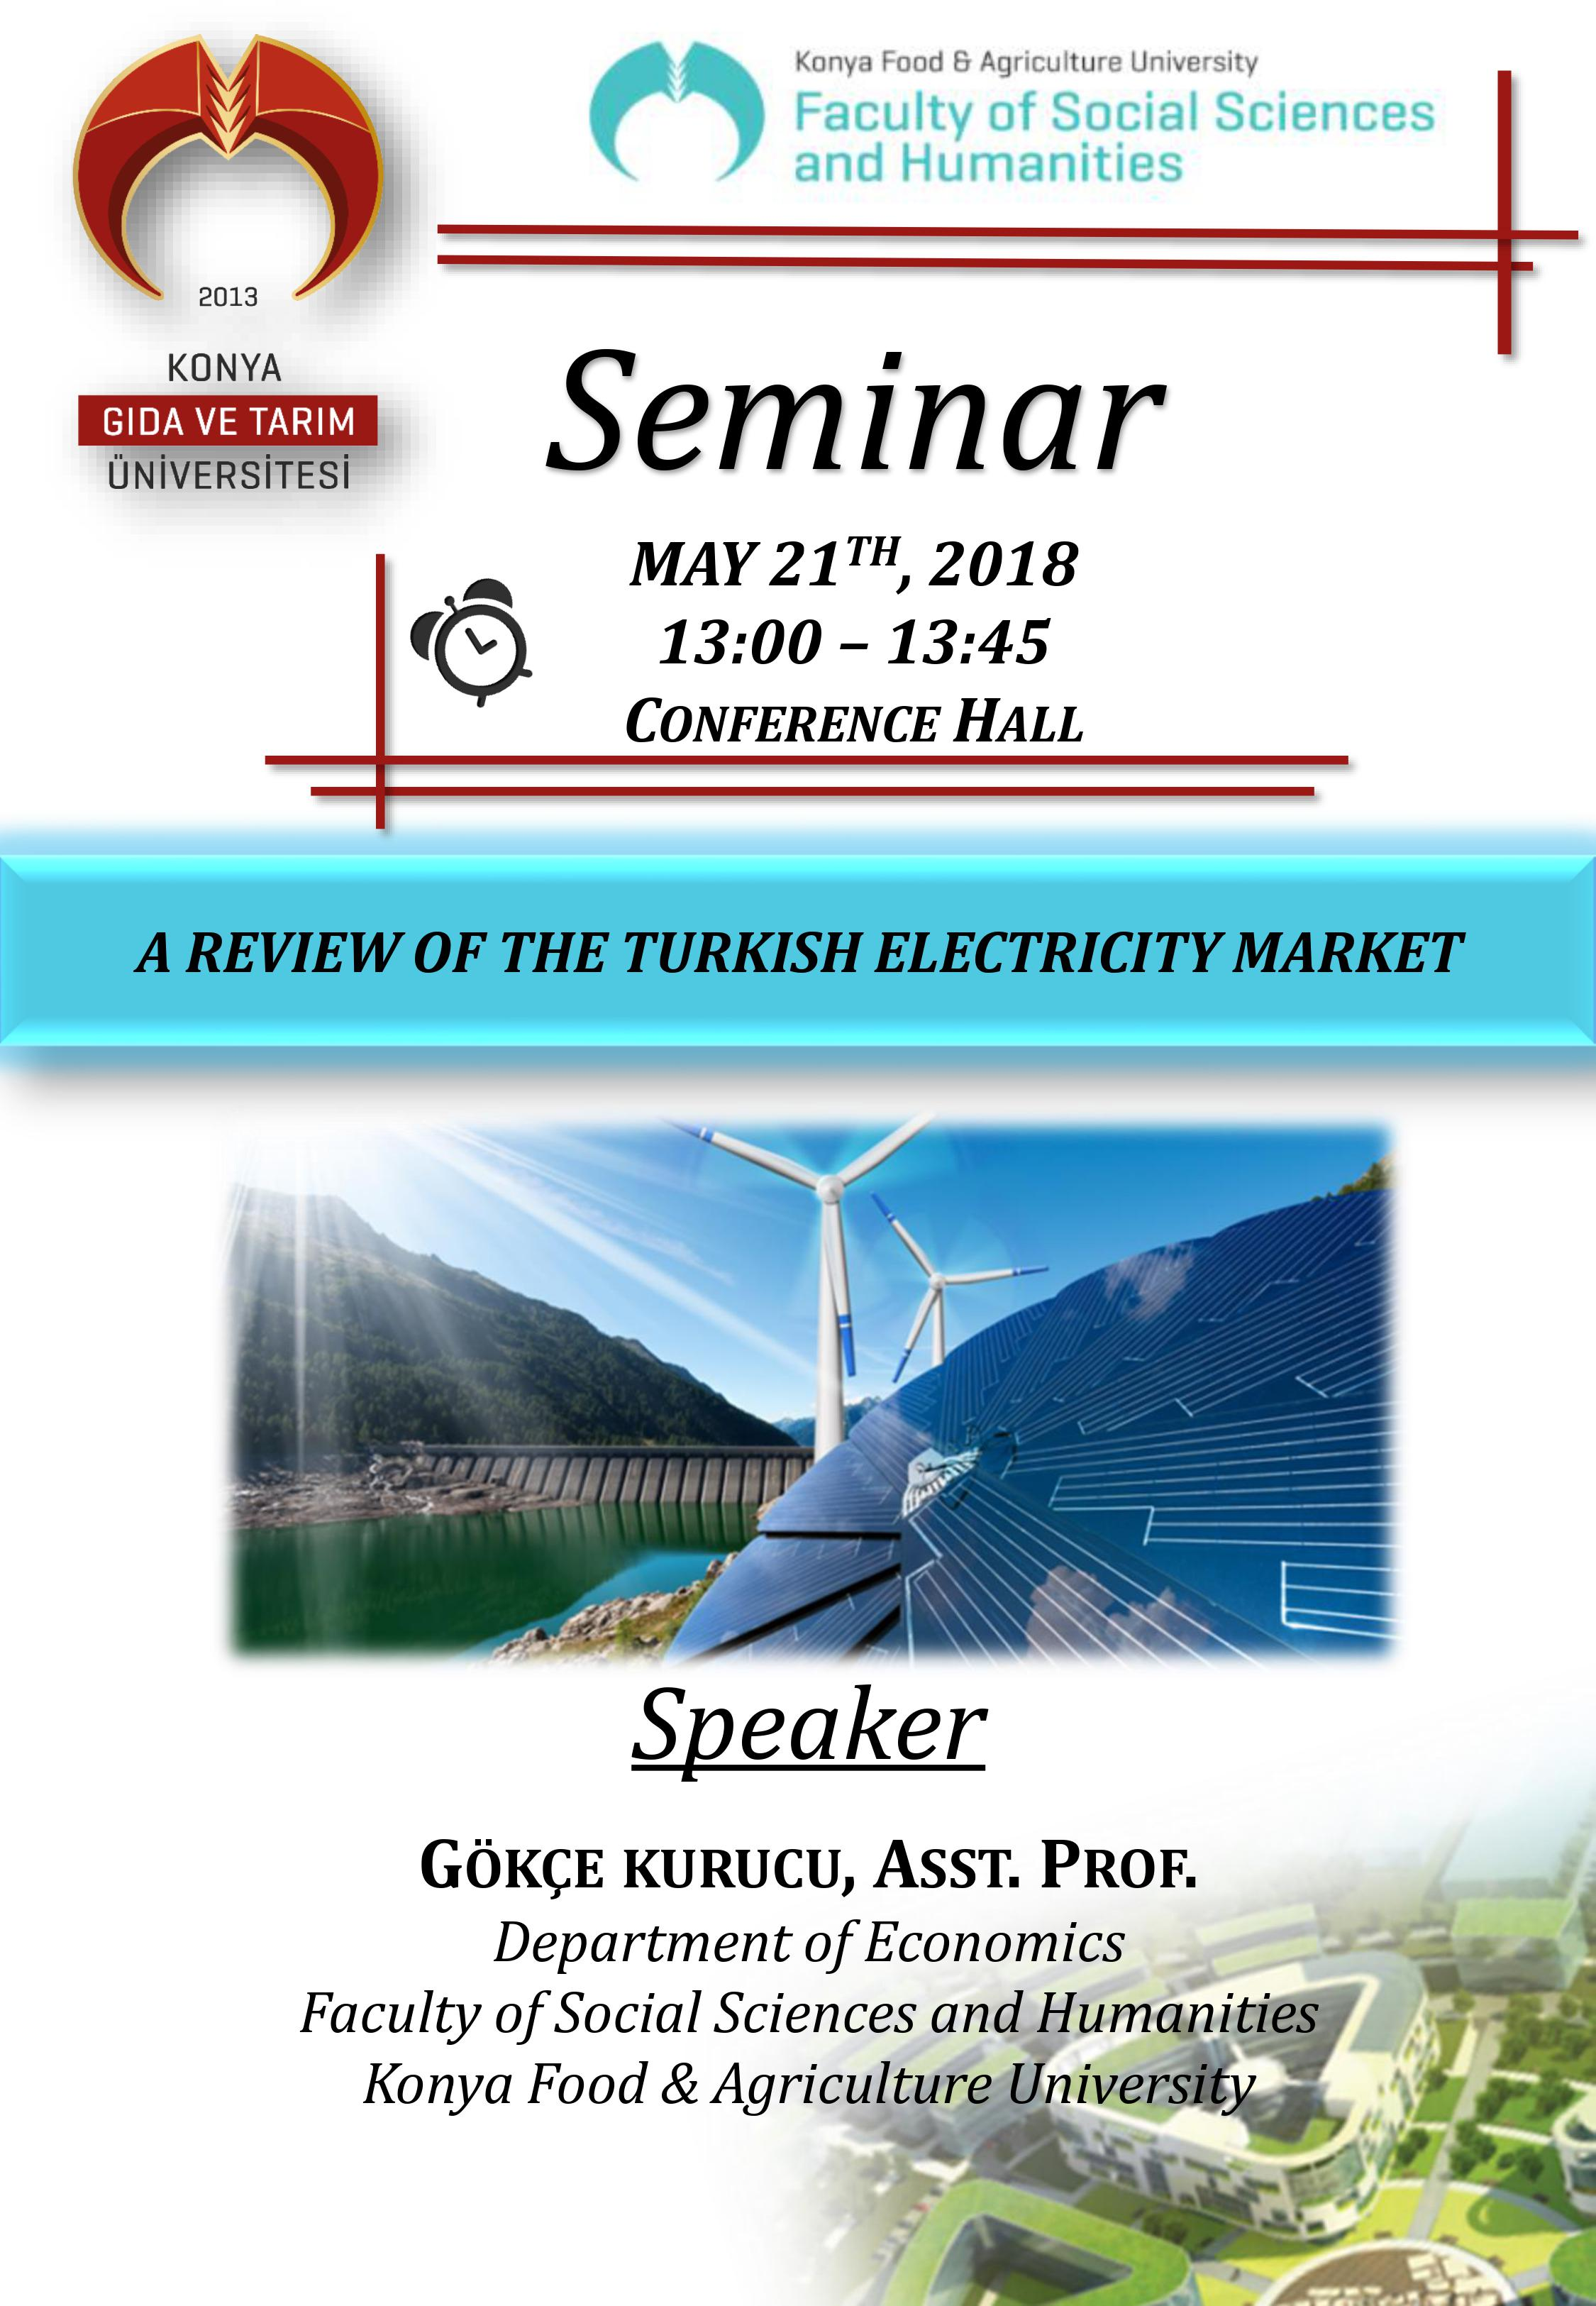 Seminer - A Review of the Turkish Electricity Market / 21 Mayıs Pazartesi 13:00